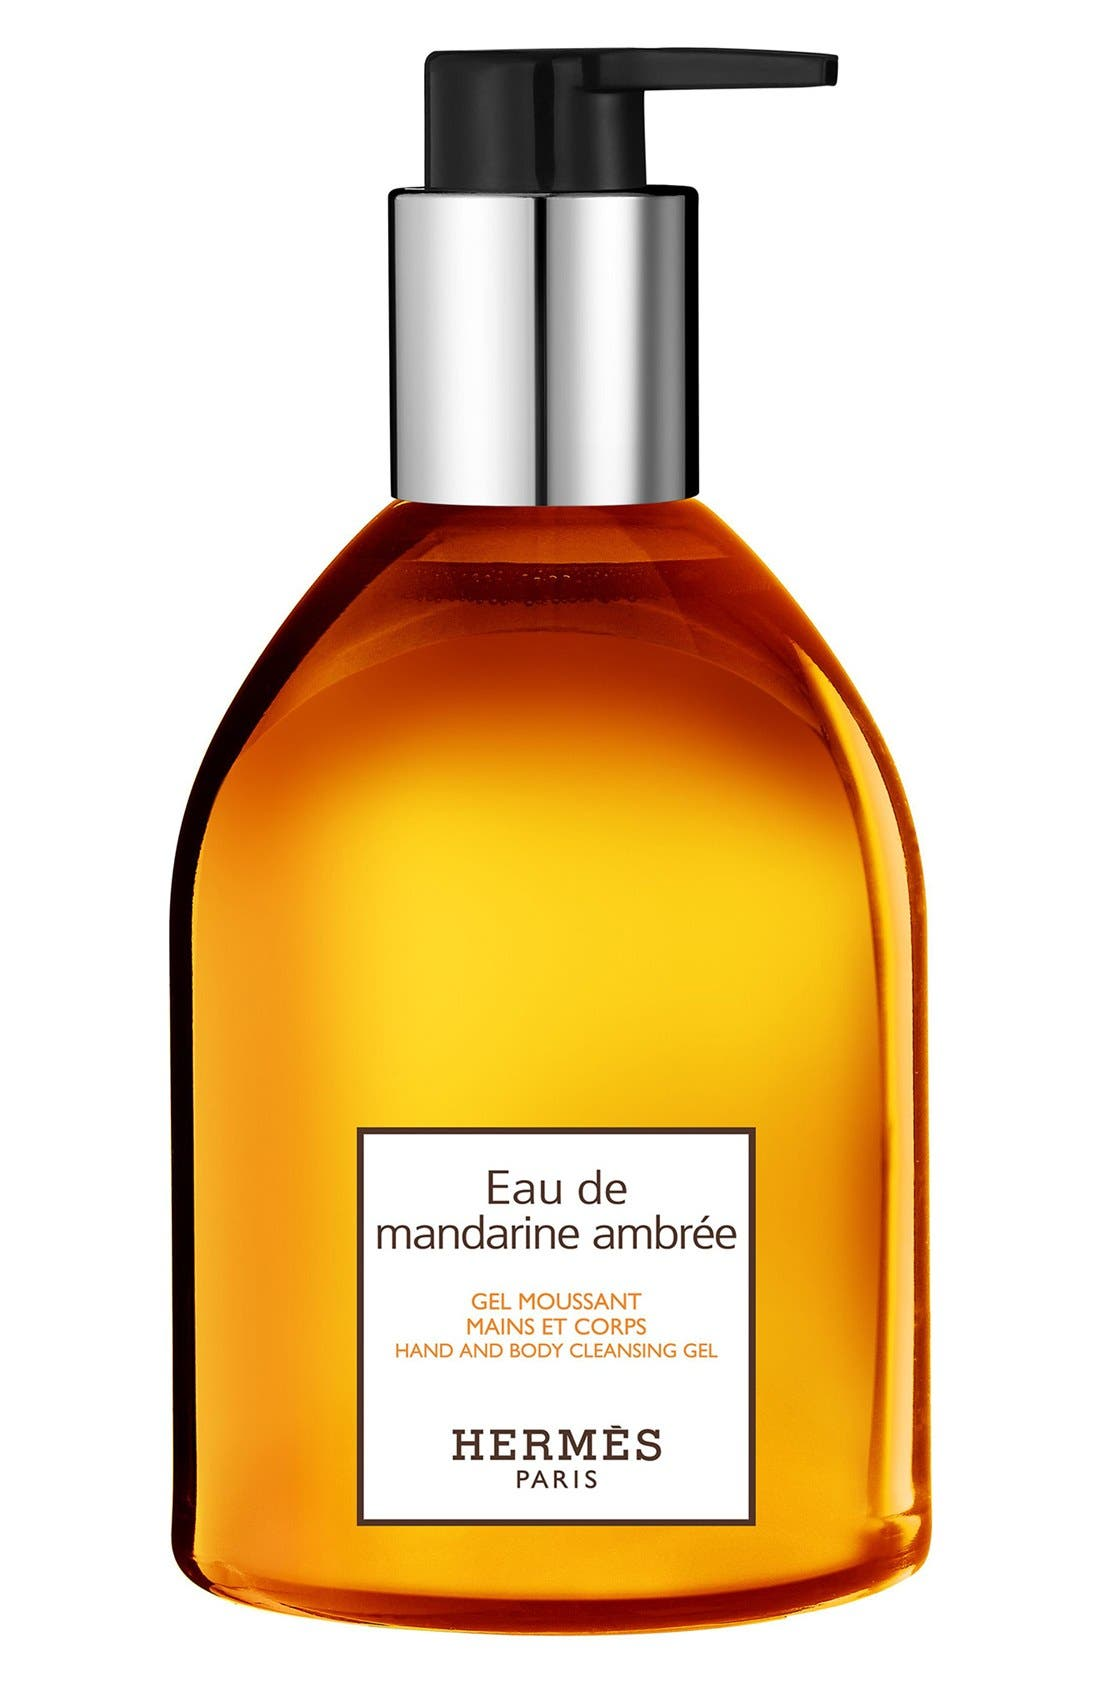 HERMÈS,                             Eau de Mandarine Ambrée - Hand and body cleansing gel,                             Main thumbnail 1, color,                             000